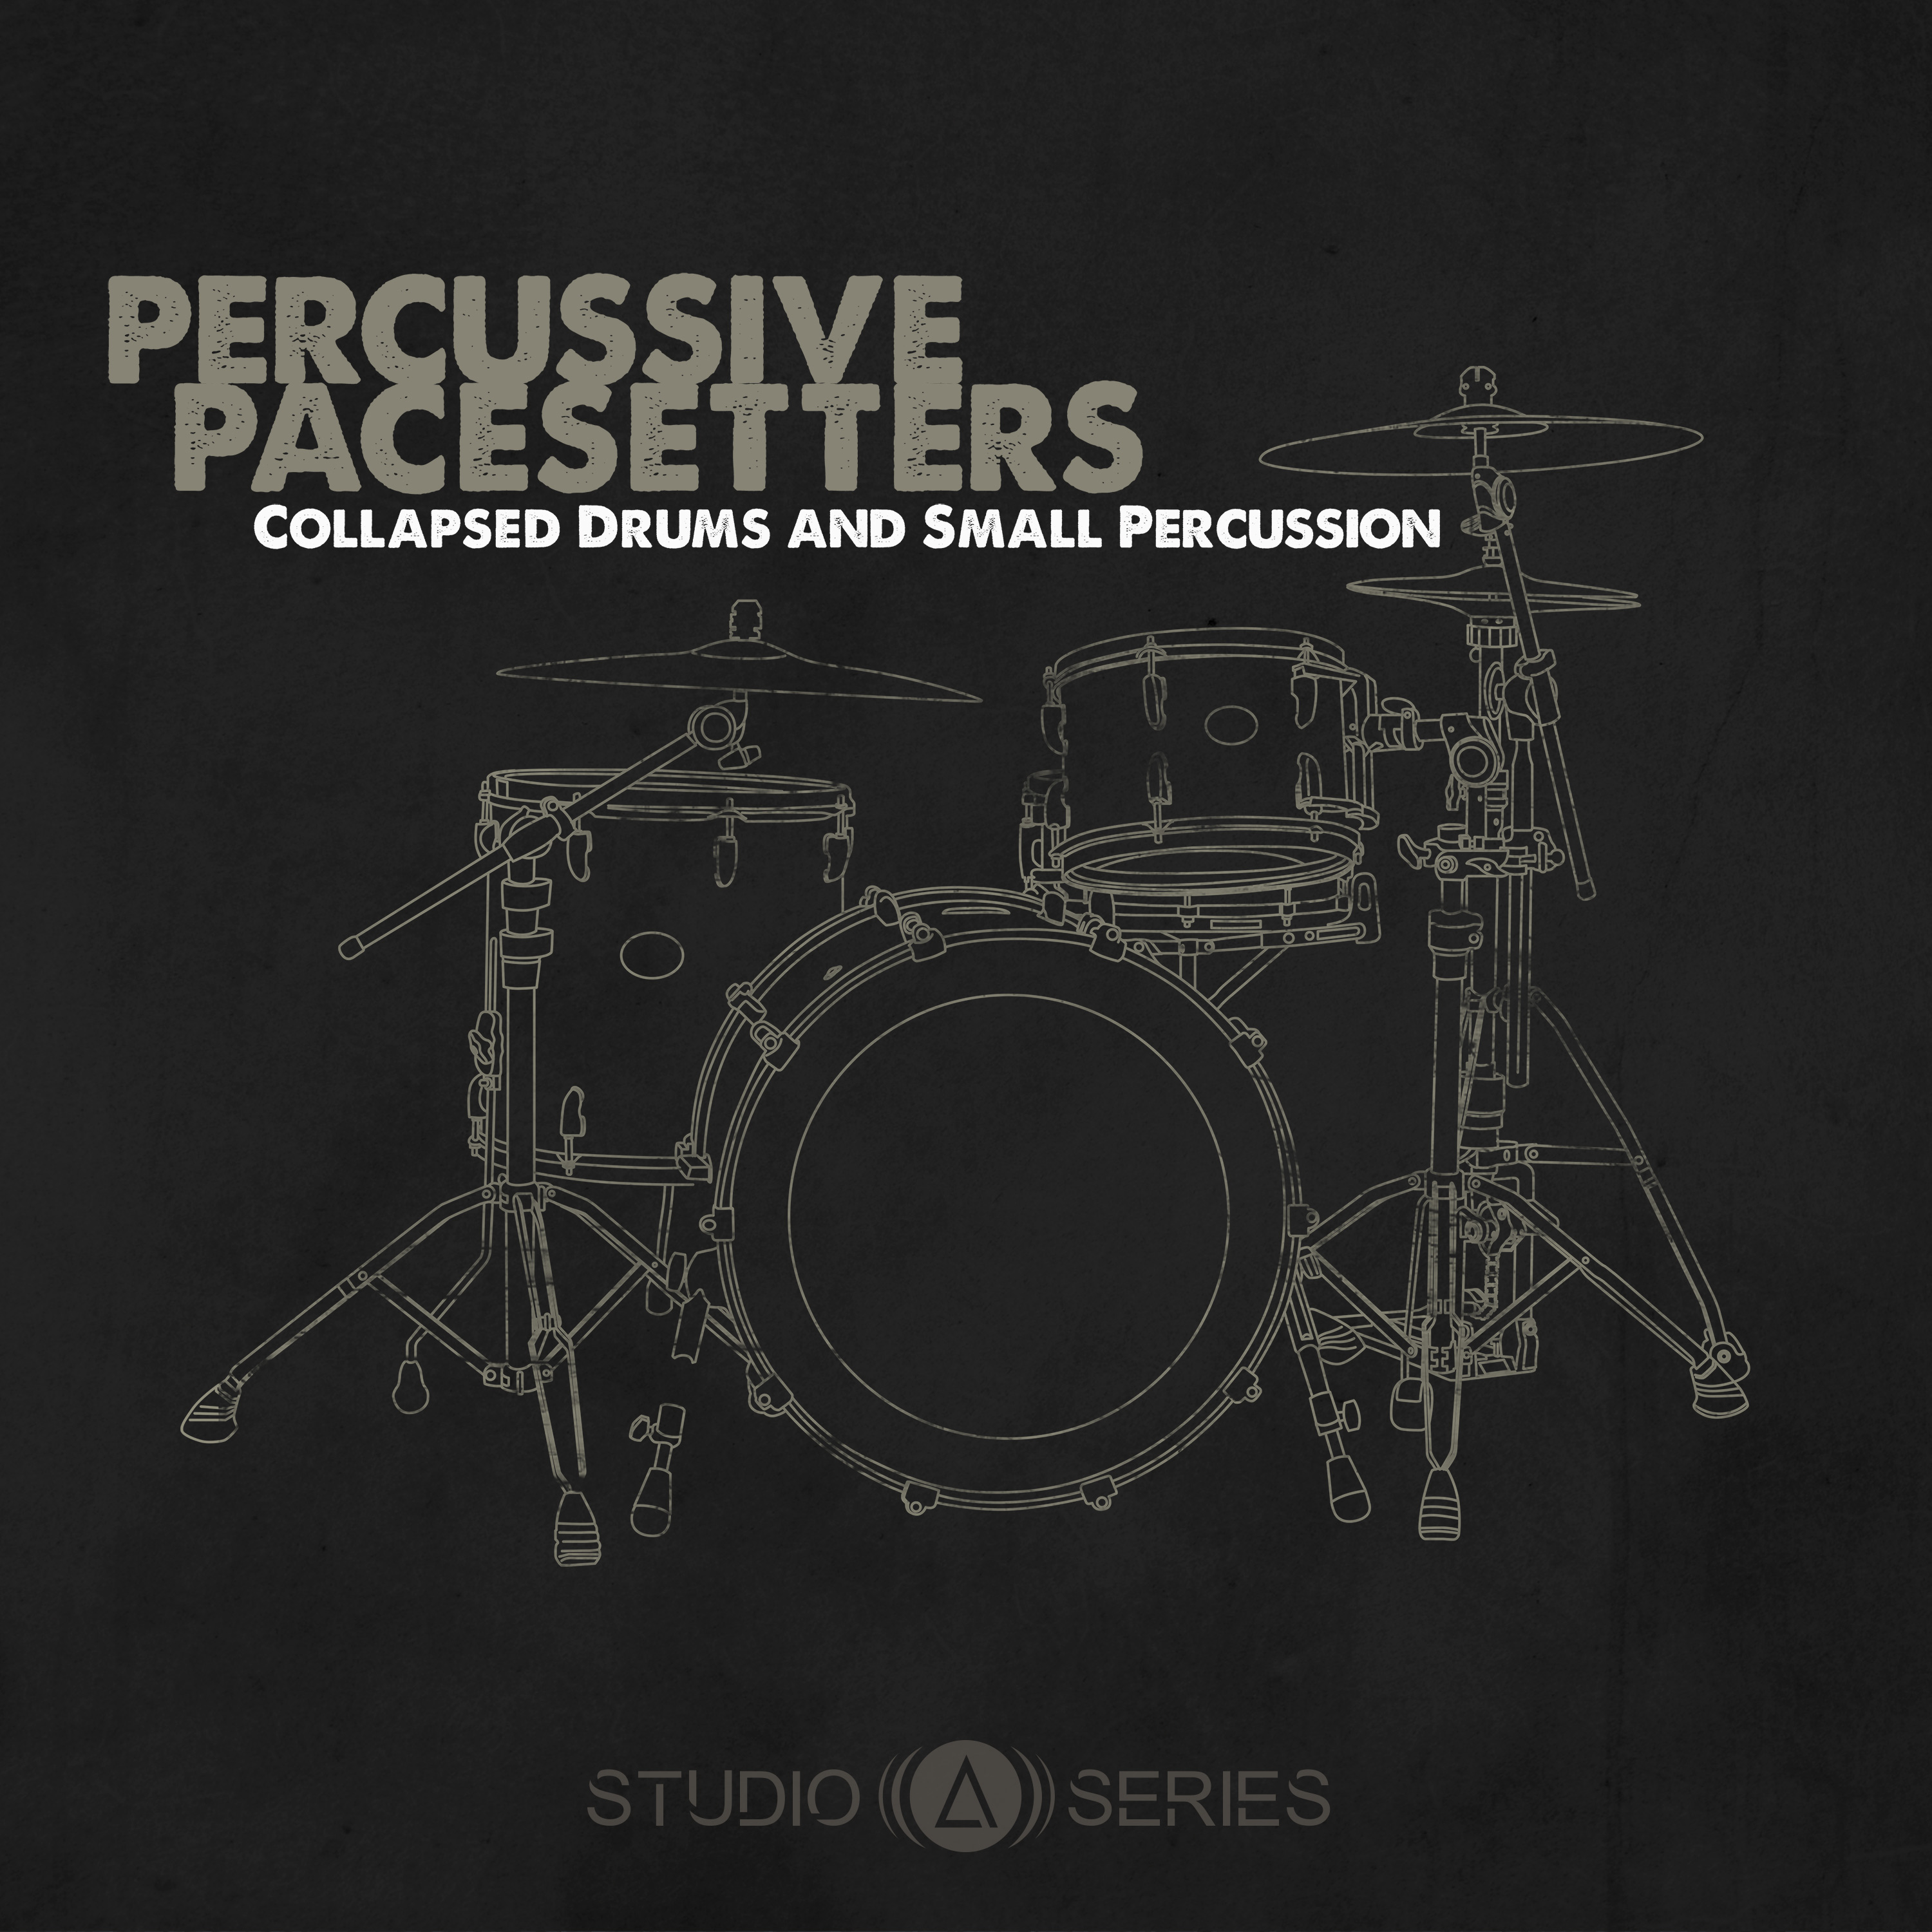 Percussive Pacesetters